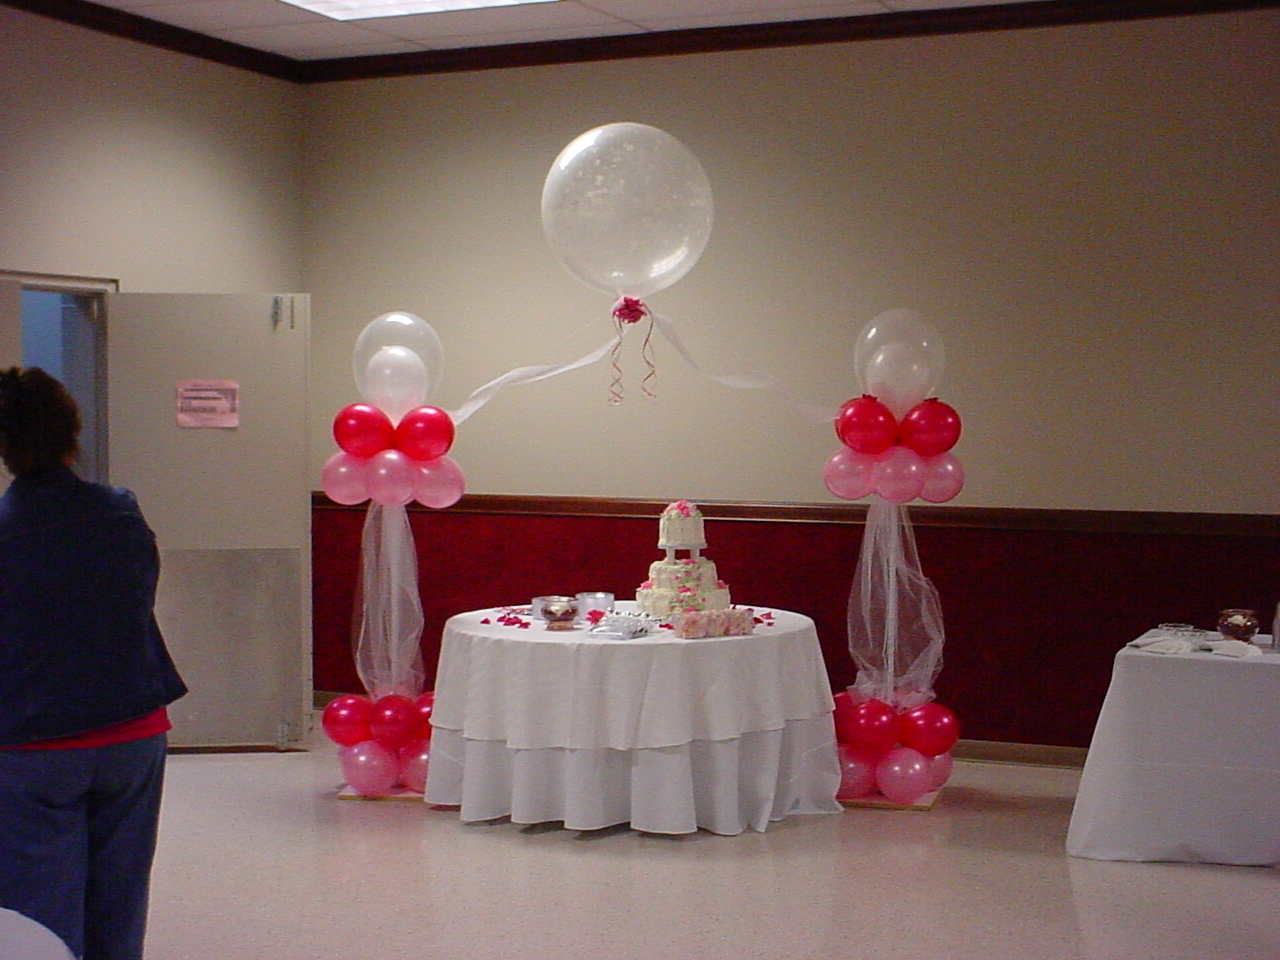 Balloon decor making memories kids birthday party designers for Balloon decoration images party